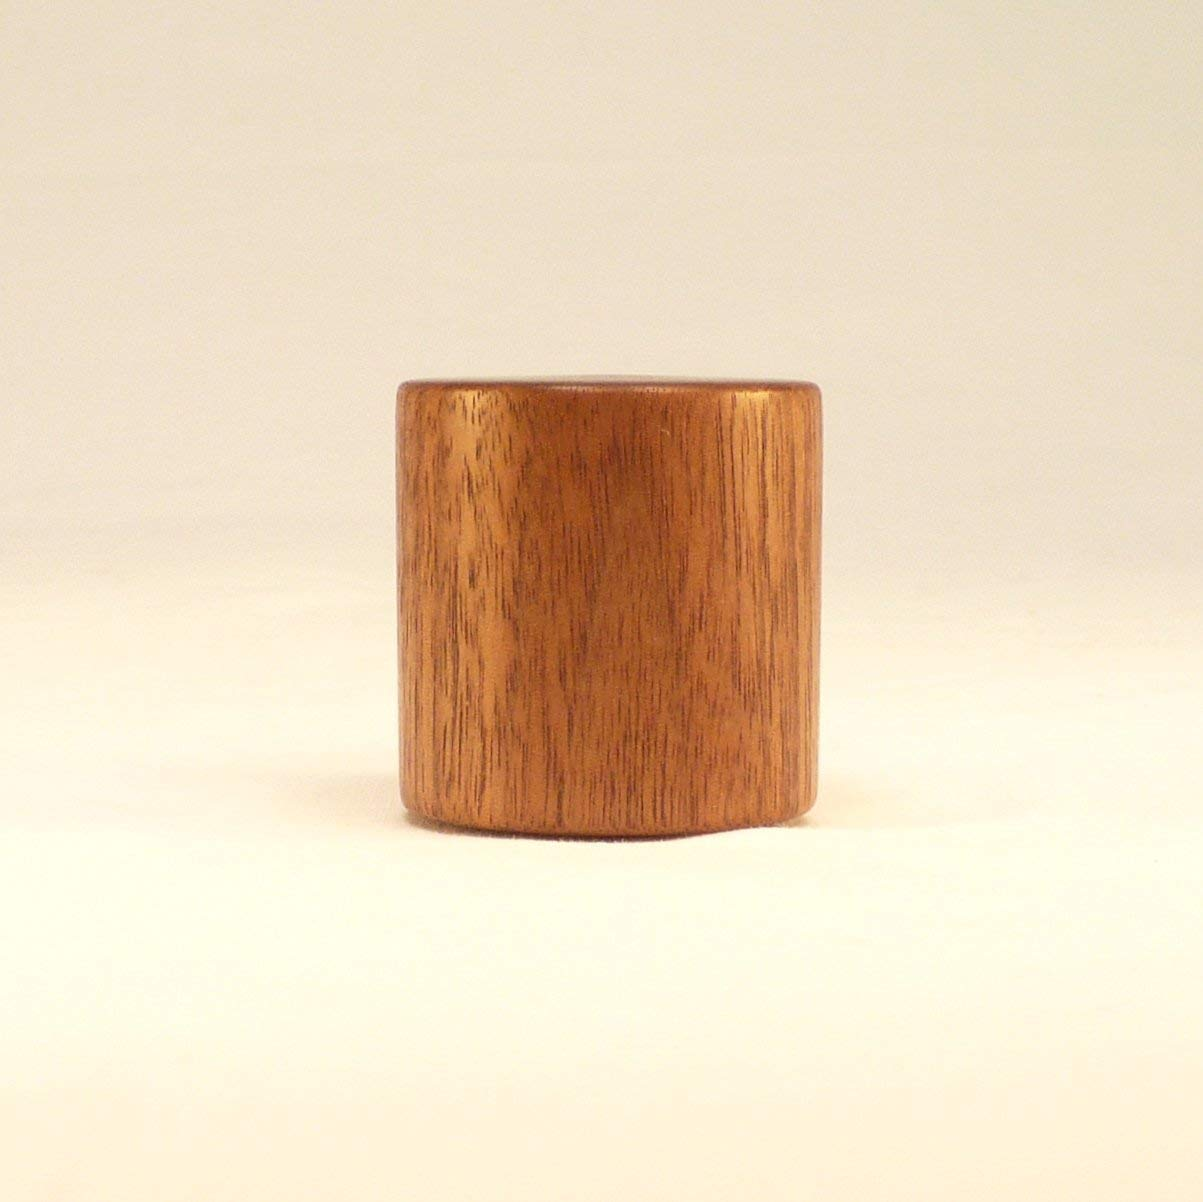 Lamp Finial Black Walnut sale Pattern 9 Selling and selling Drum